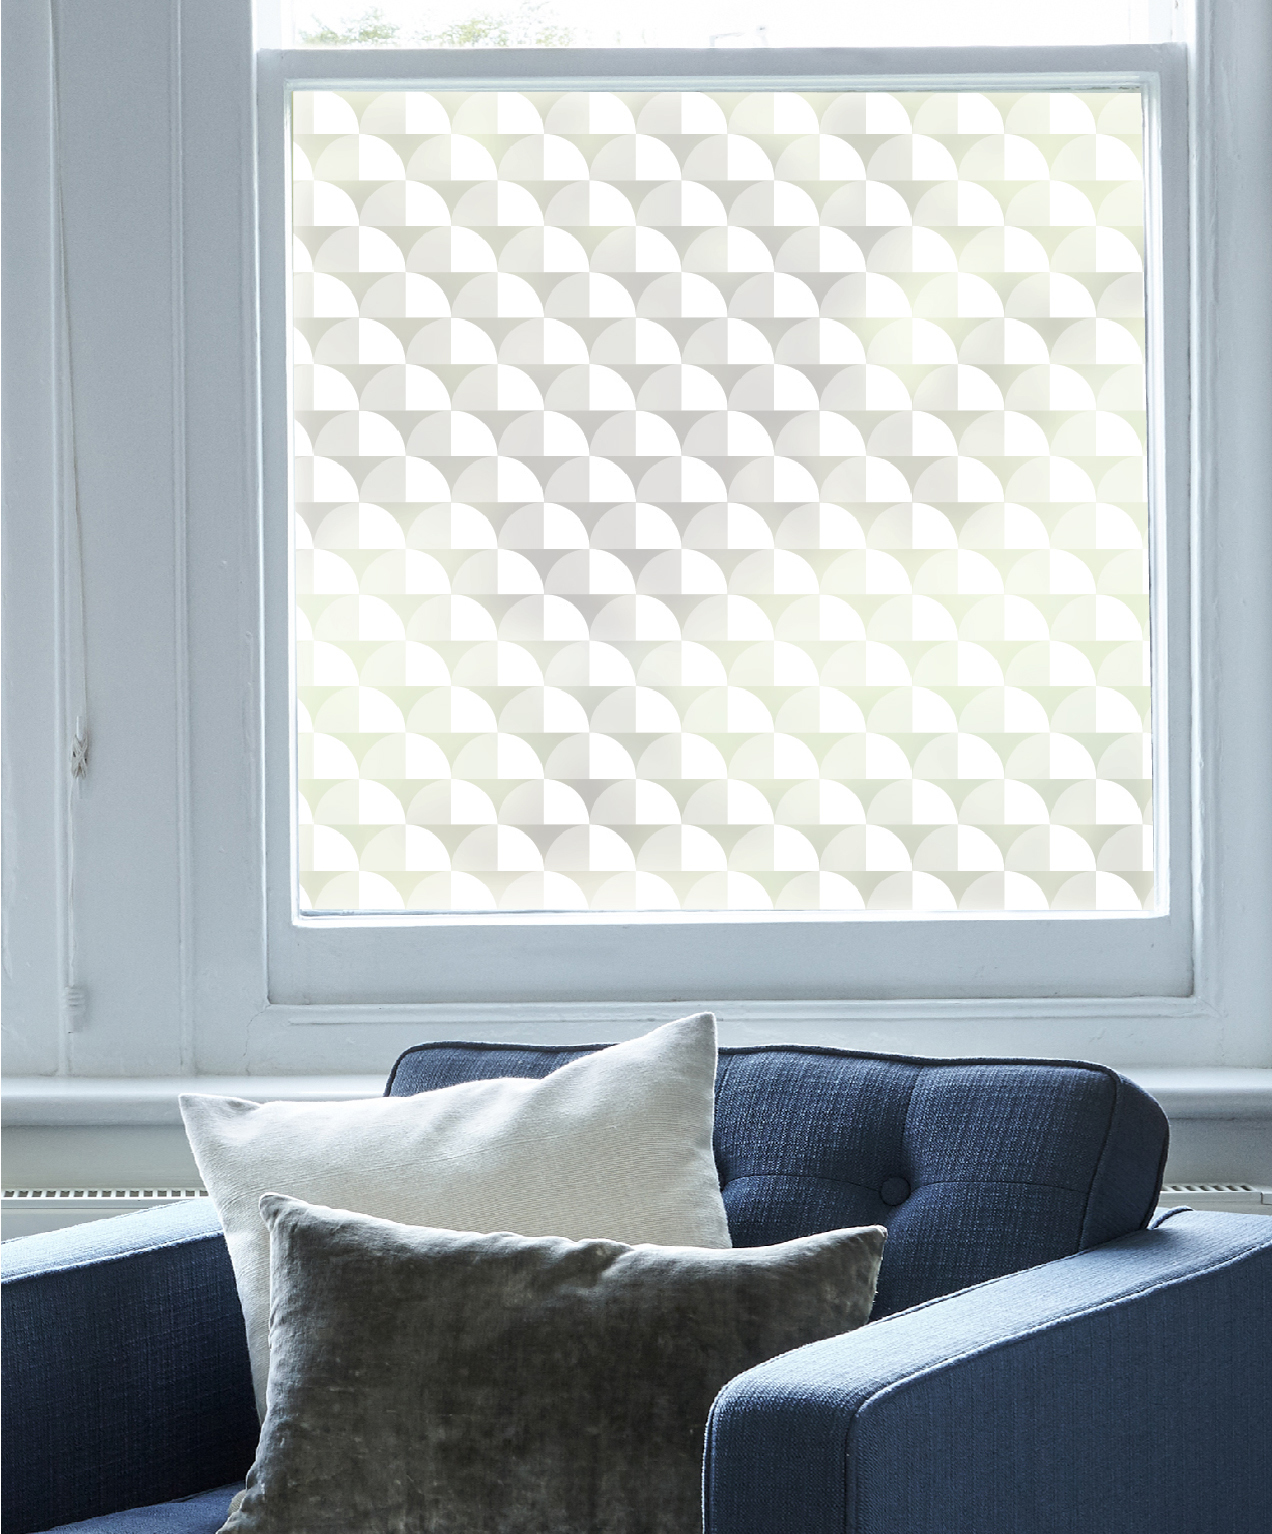 The  Scallop window film  makes a bold statement whilst providing privacy and still letting light through at the same time.